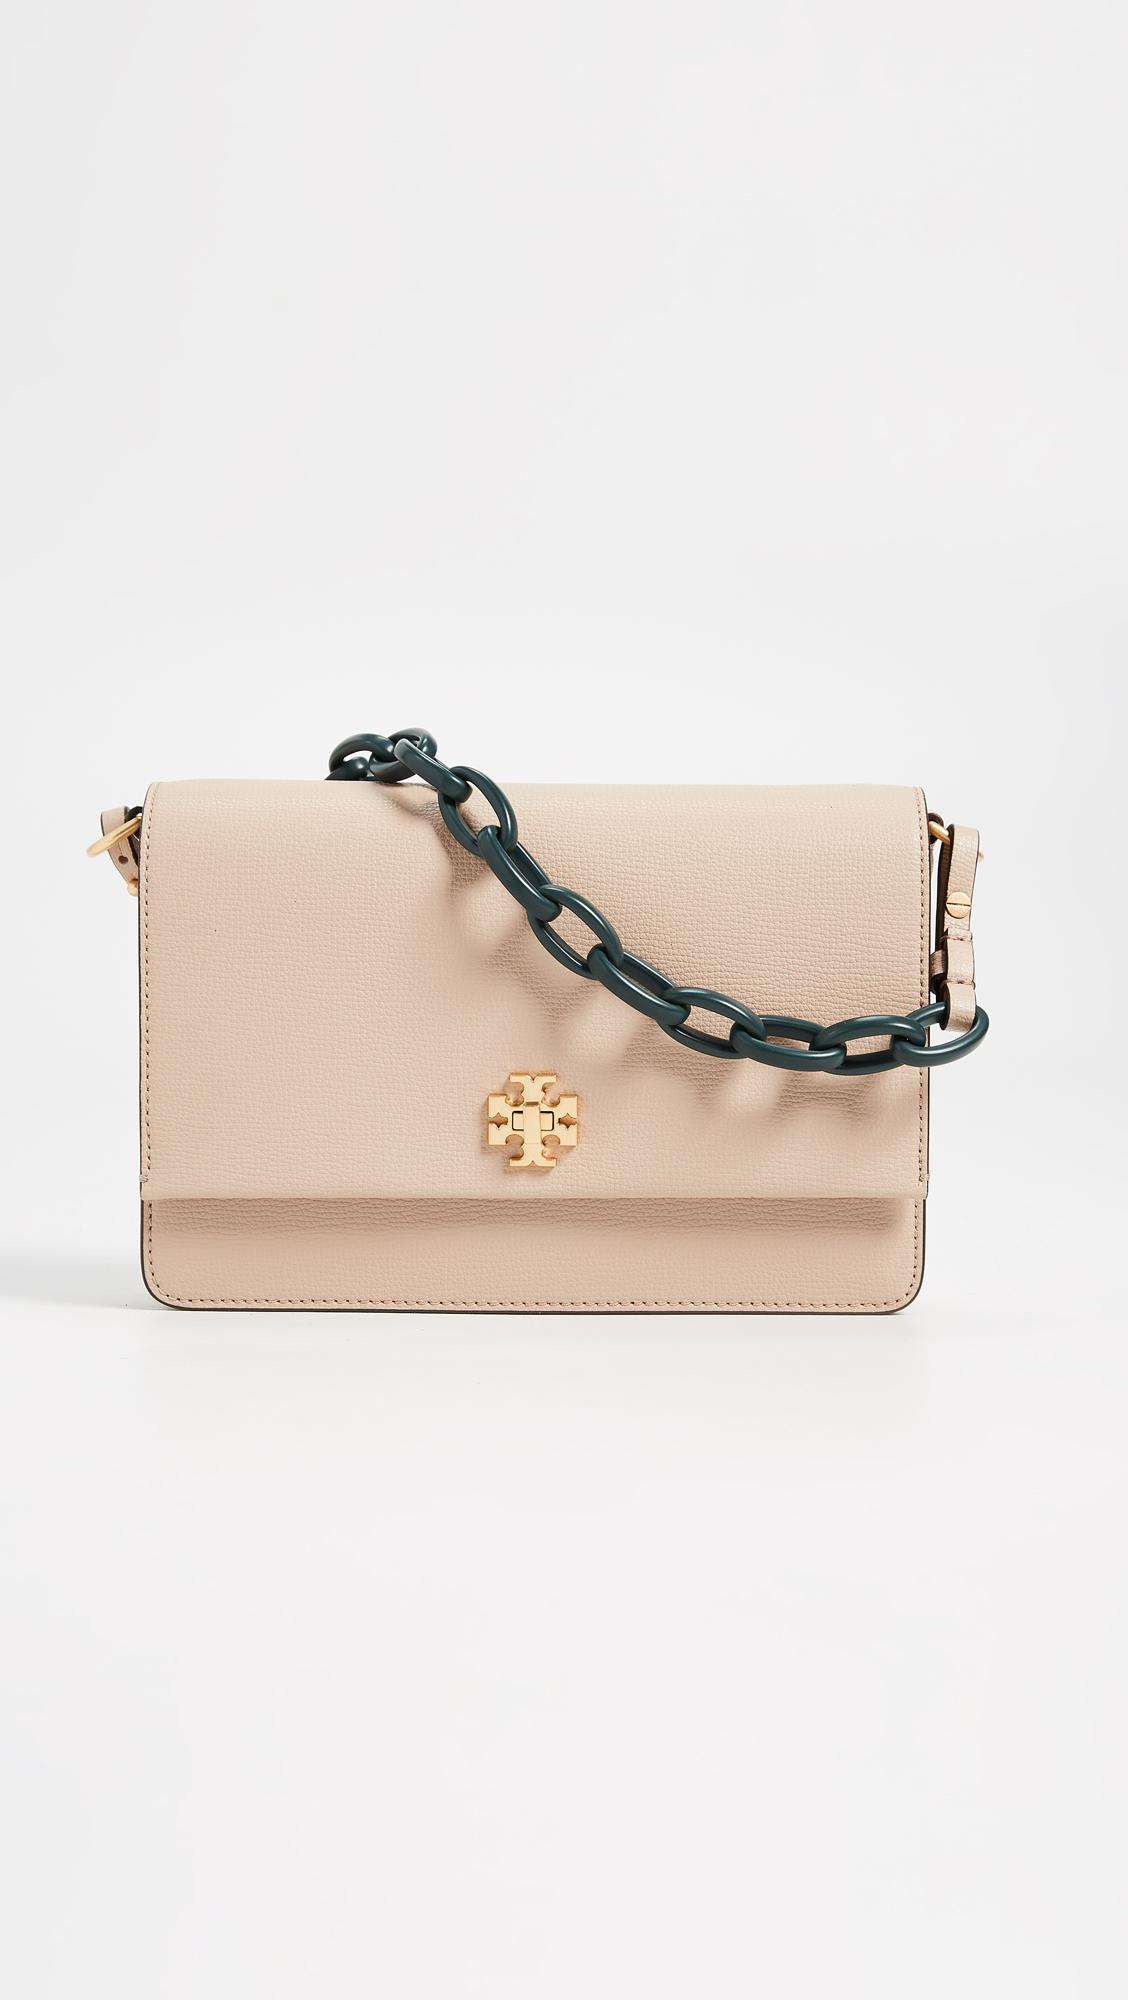 691b799a756eb Lyst - Tory Burch Kira Double Strap Shoulder Bag in Natural